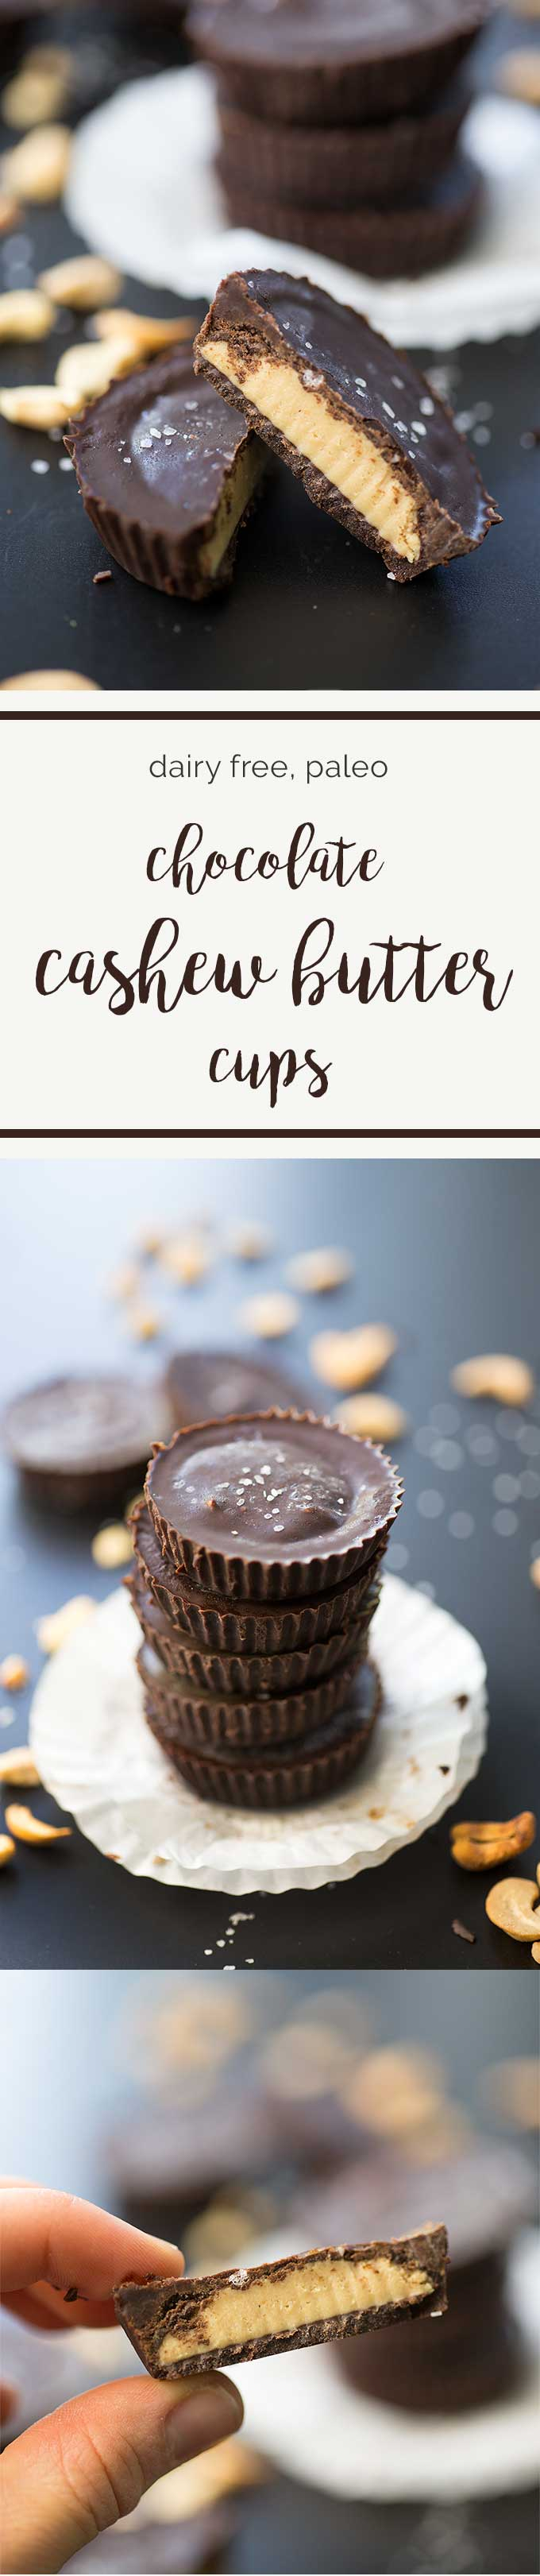 Dark Chocolate Cashew Butter Cups – dairy-free chocolate stuffed with a creamy cashew butter filling. Just one of many Paleo Dark Chocolate Treats!